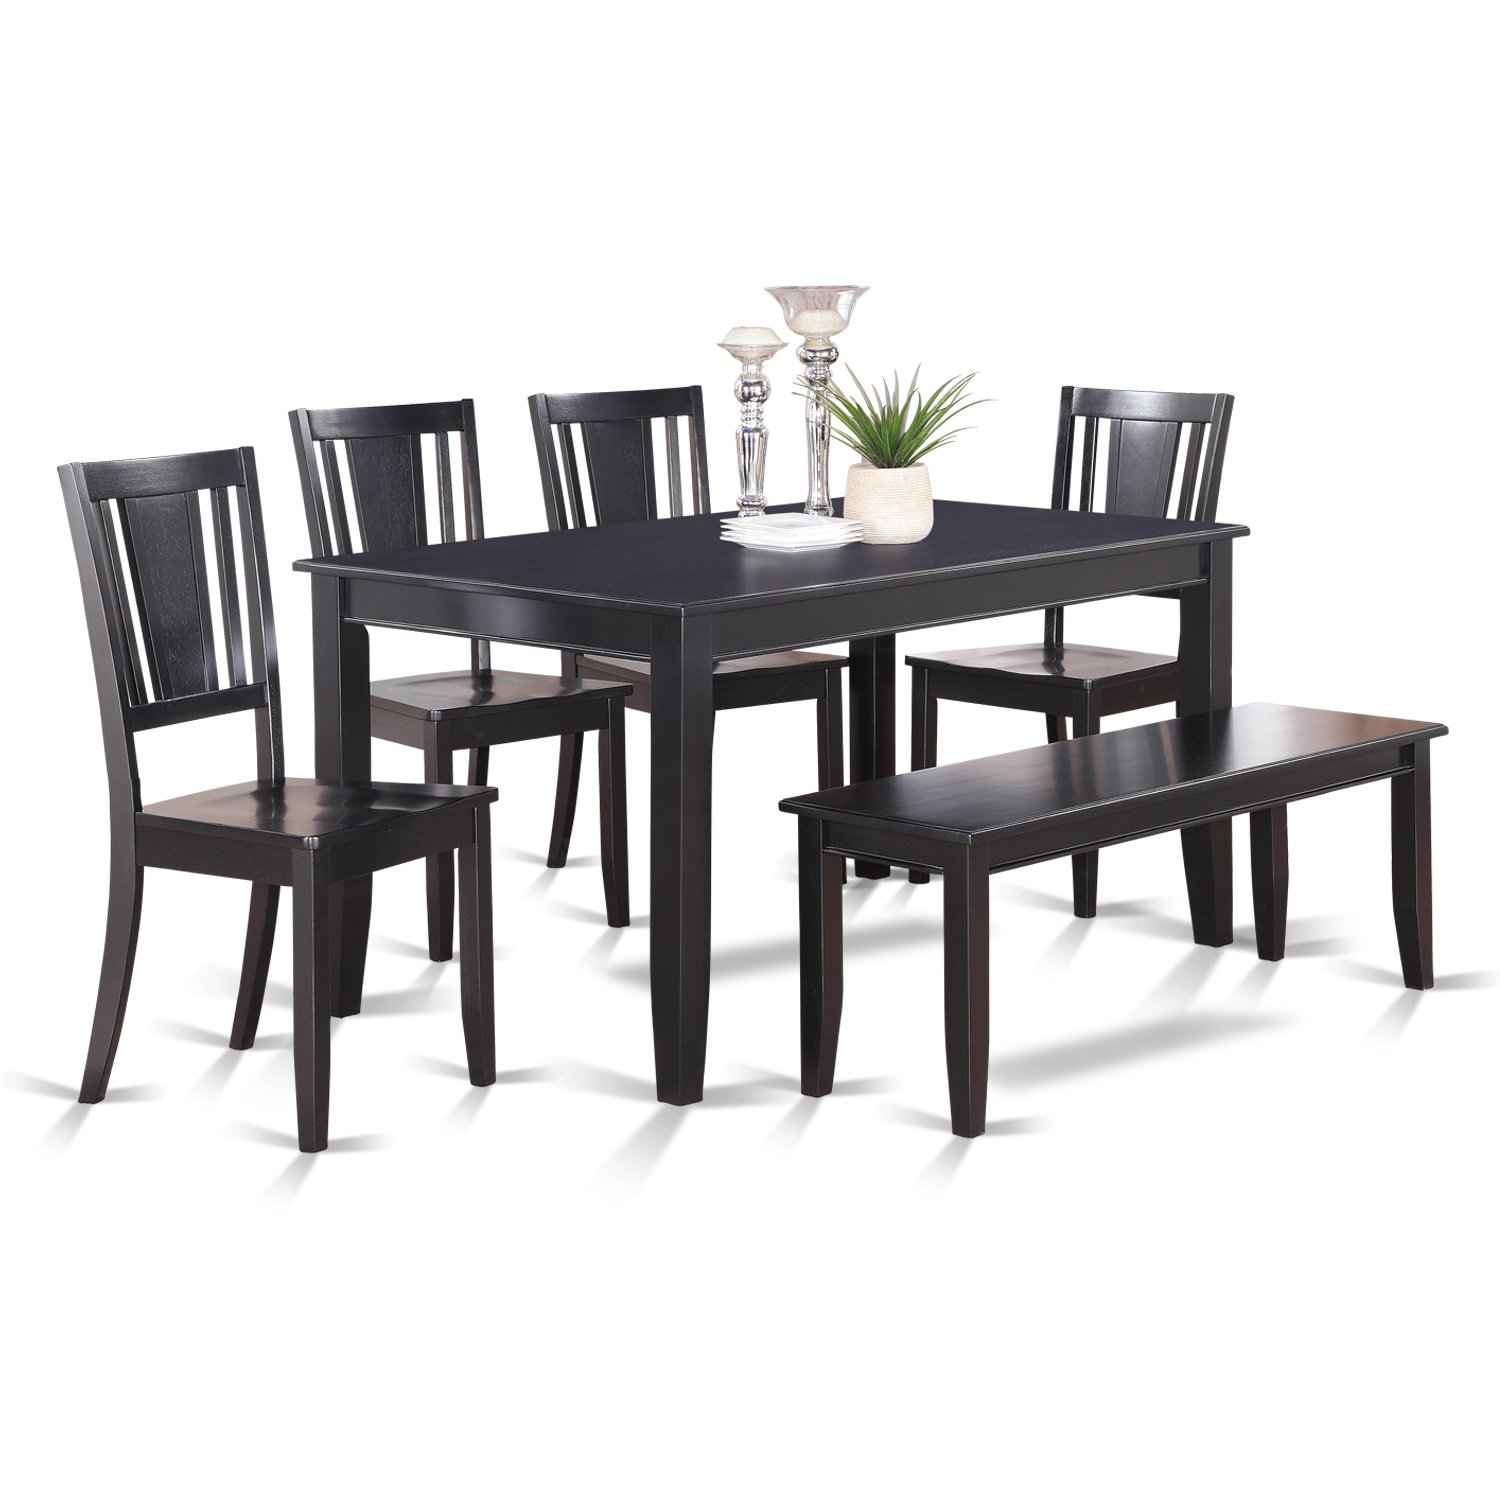 DULE6-BLK-W 6 Pc Dining Table with bench-Dining Table and 4 Dining Chairs and Bench